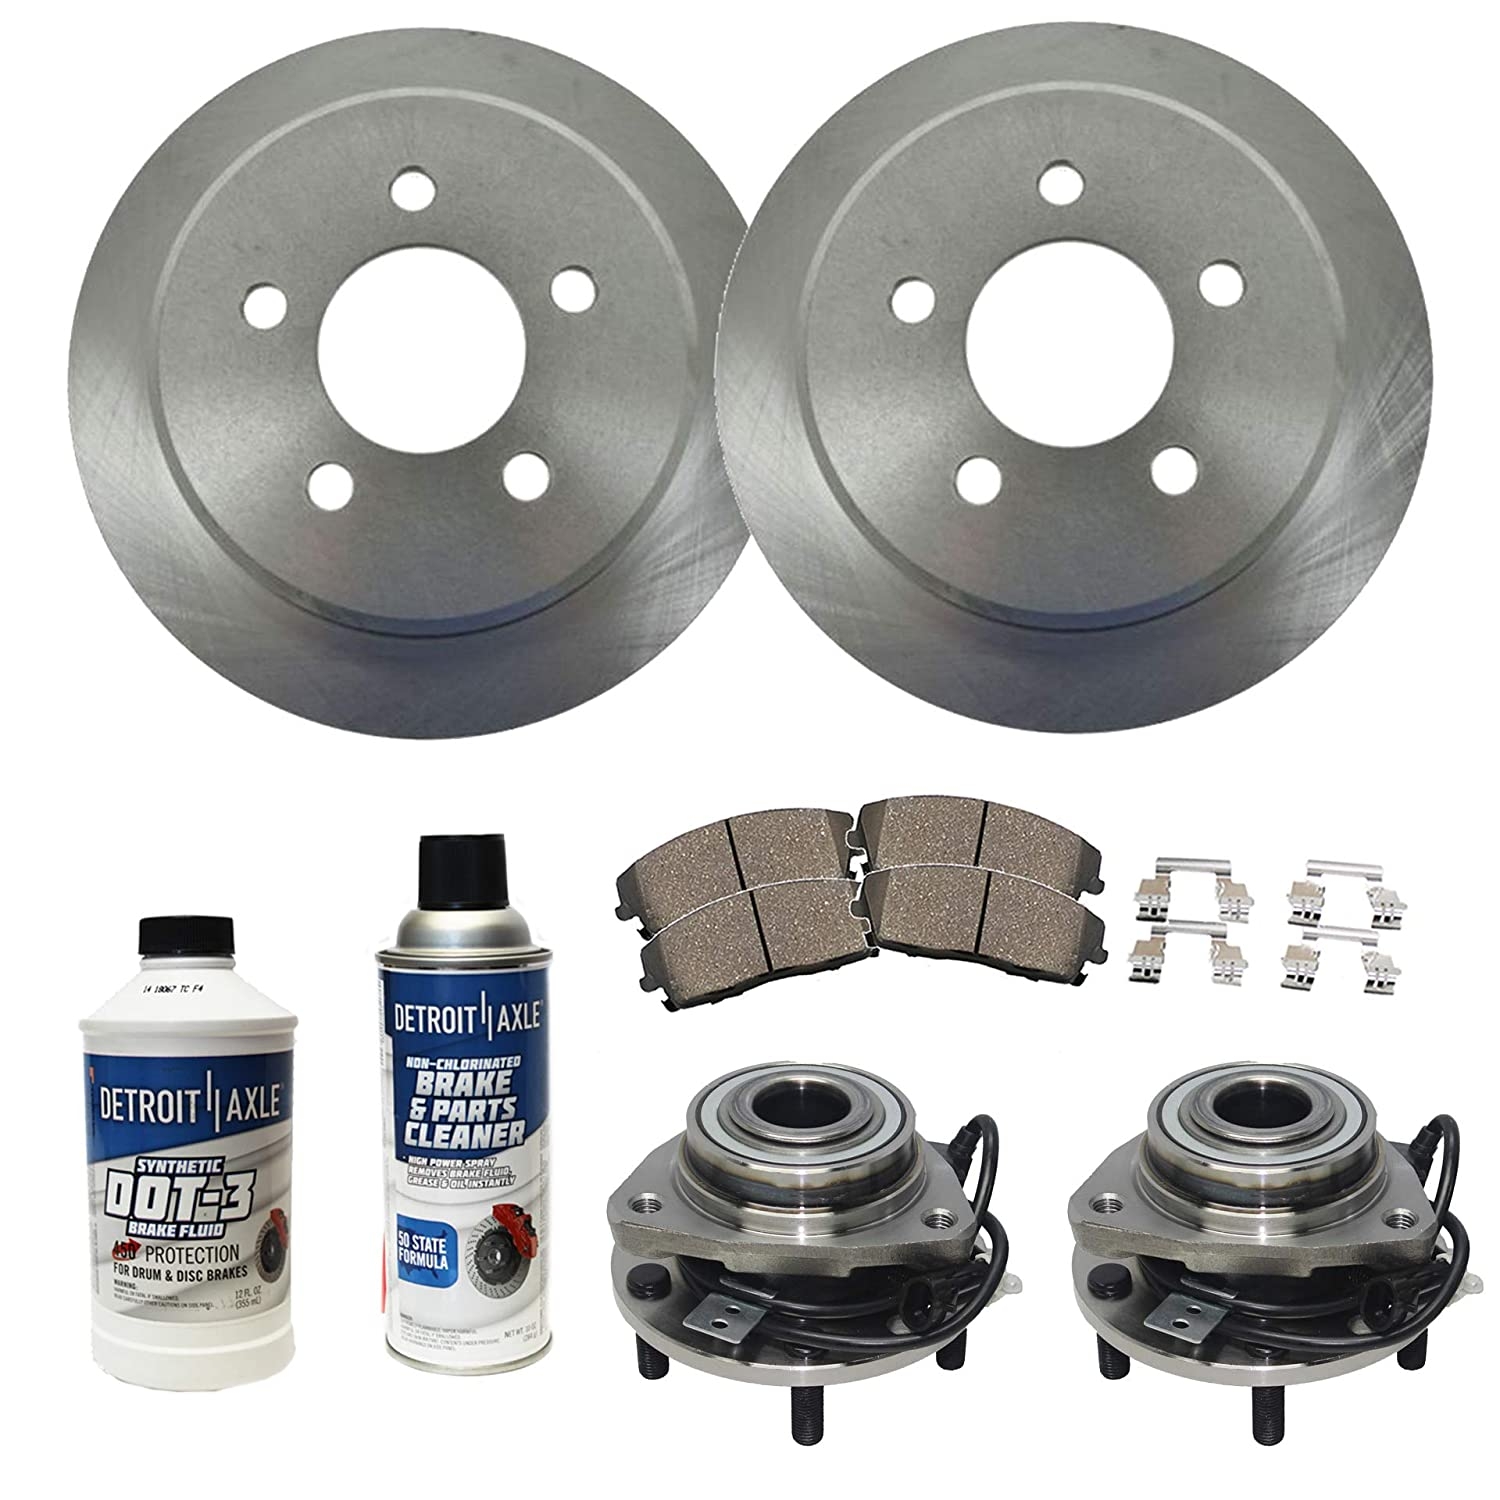 Detroit Axle - Both Front Wheel Bearing & Hub Assembly, Disc Brake Rotors,  Ceramic Pads w/Hardware & Brake Cleaner Fluid for 98-05 Chevy S10 Blazer -